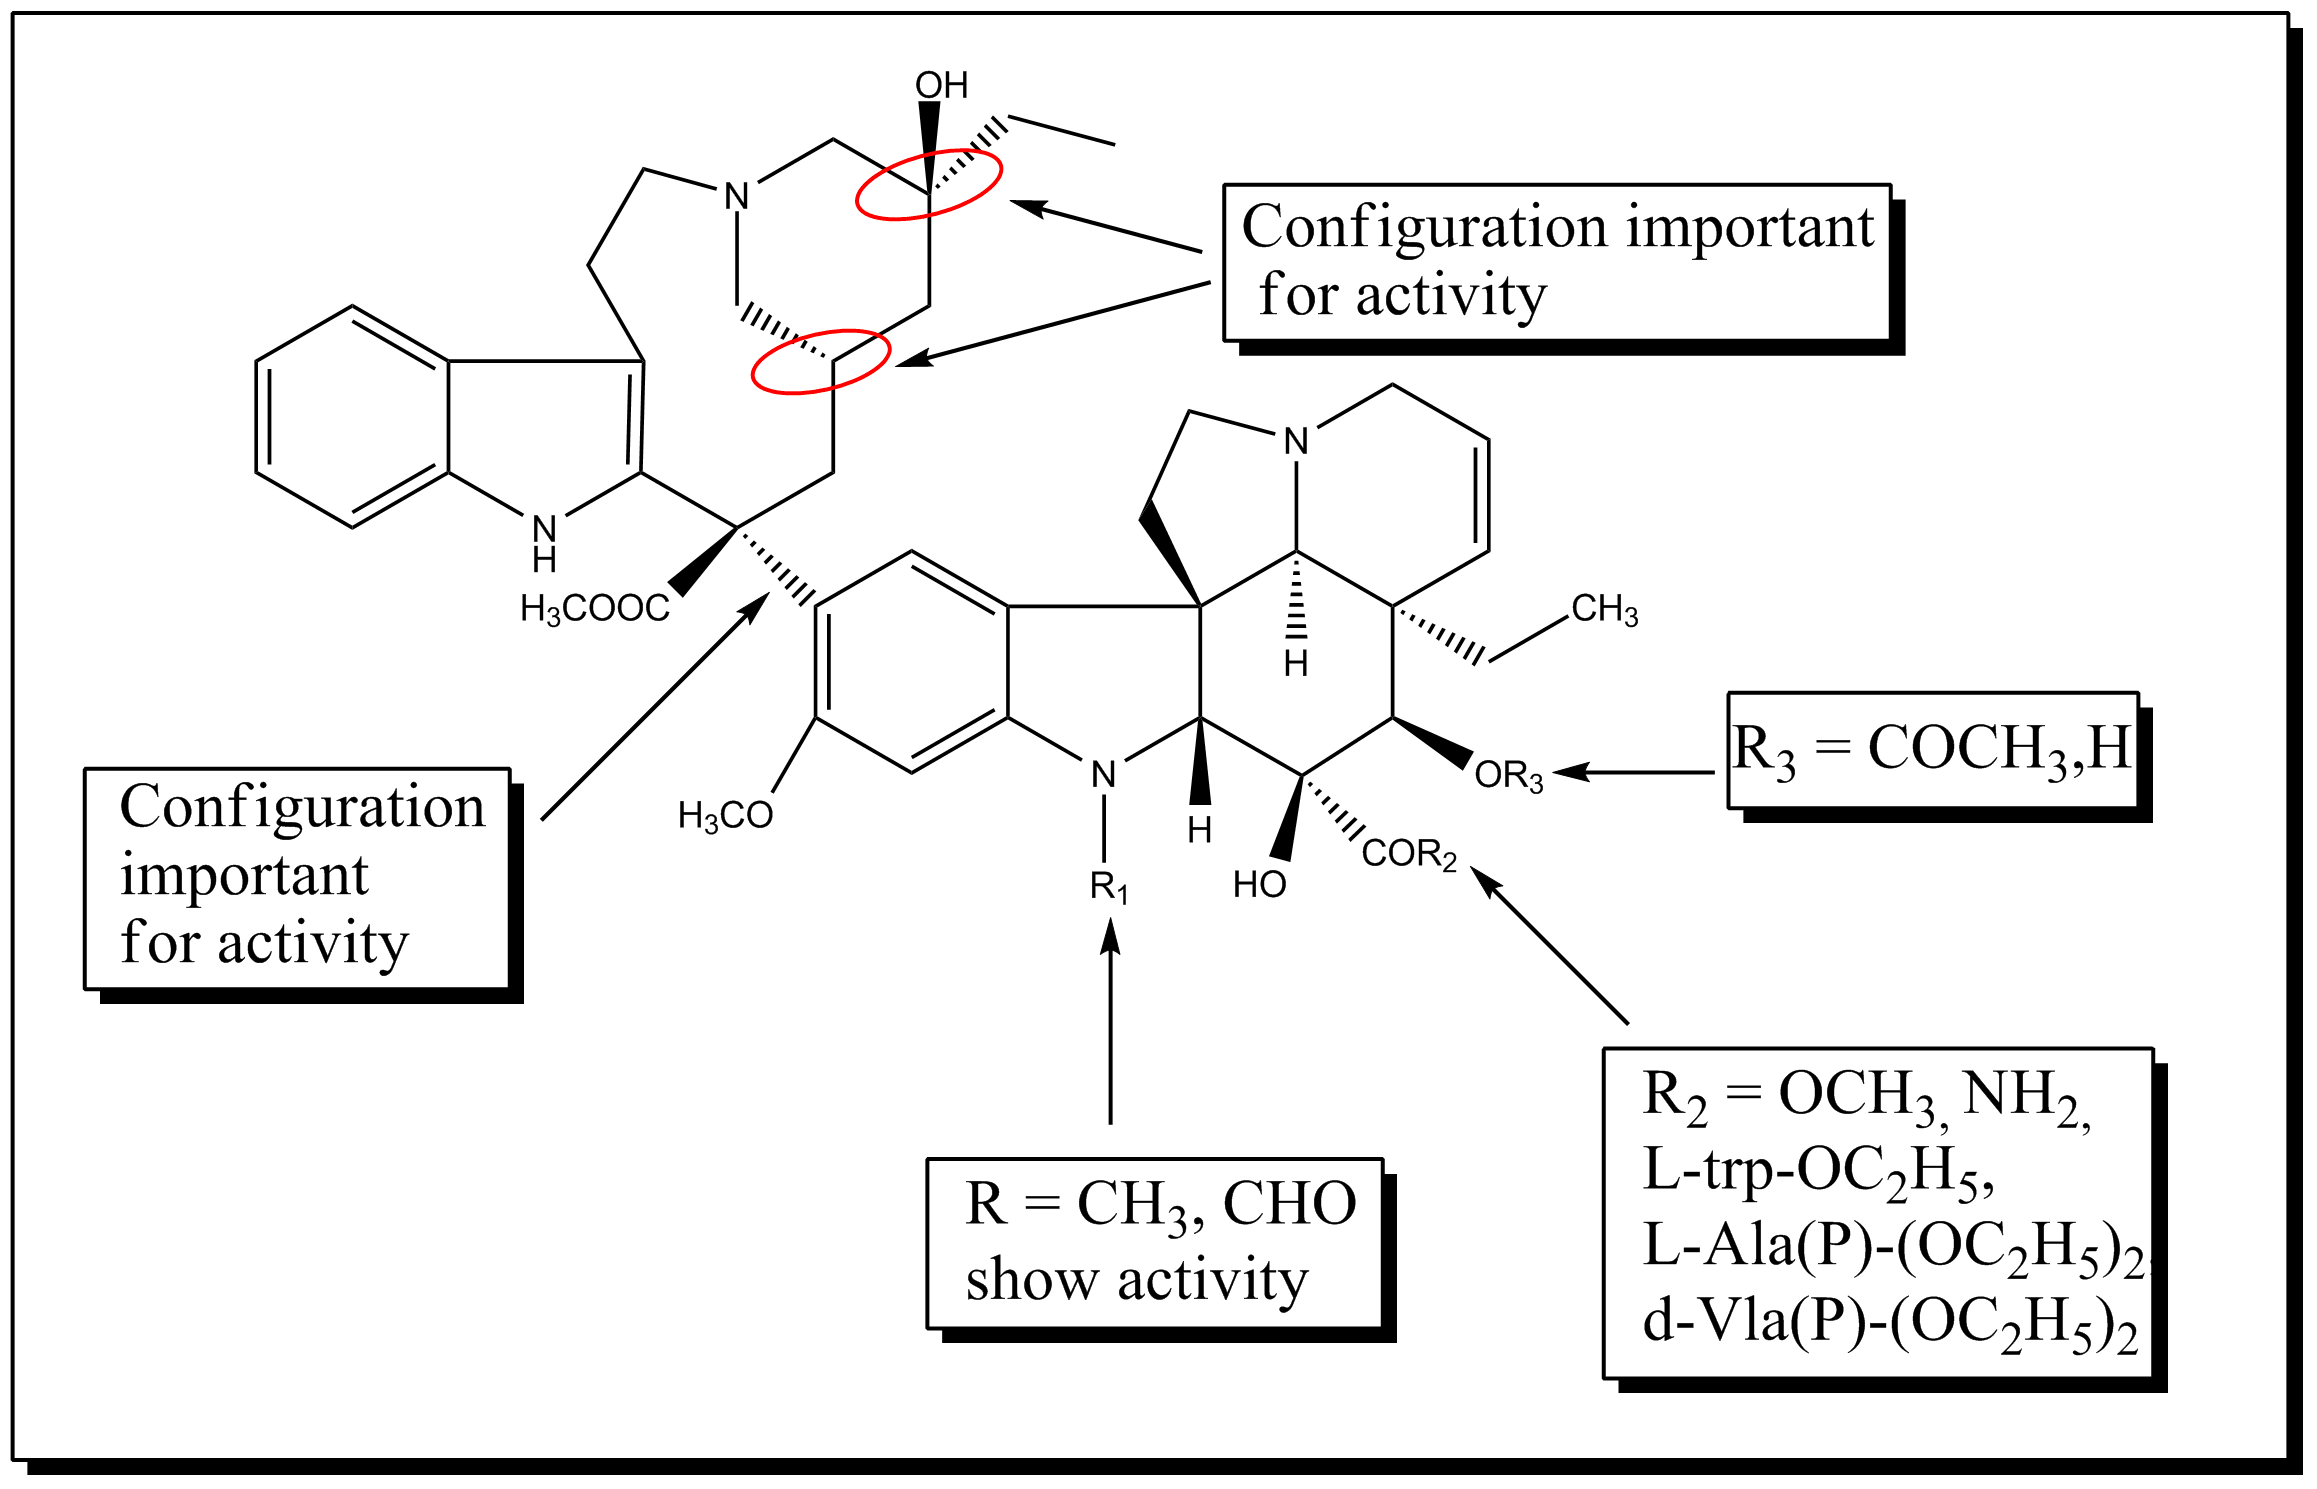 carvedilol structure activity relationship of indole